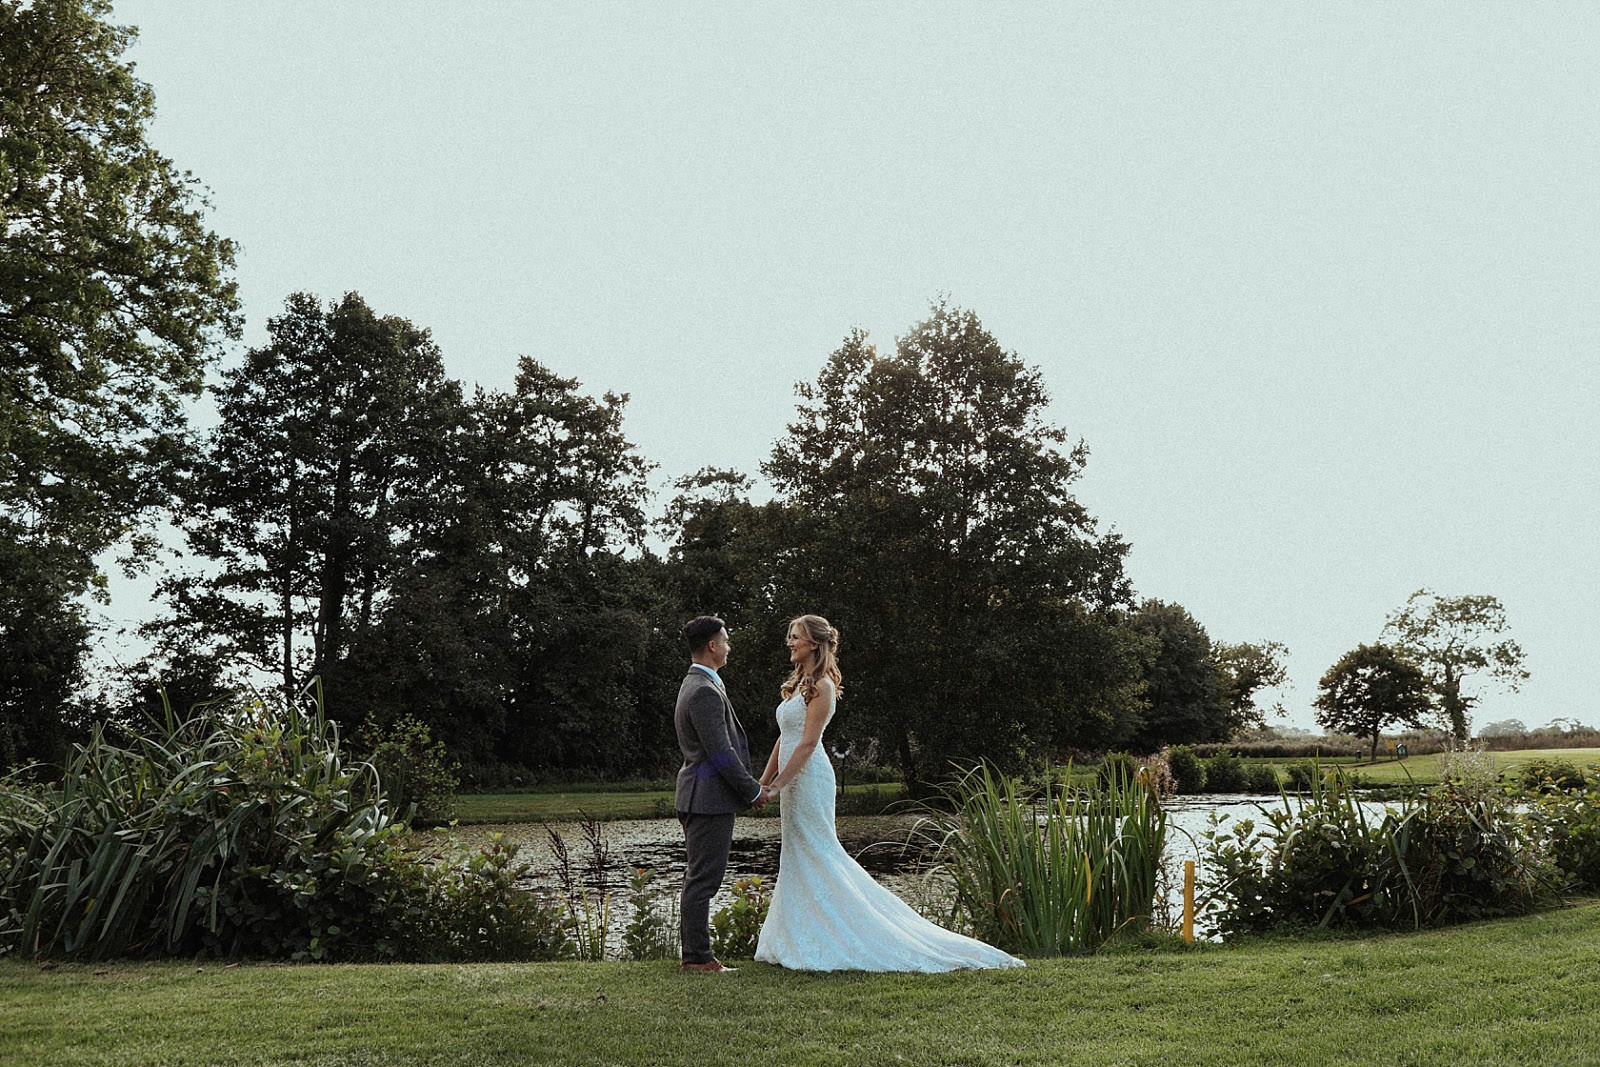 bride and groom portraits with lake in background